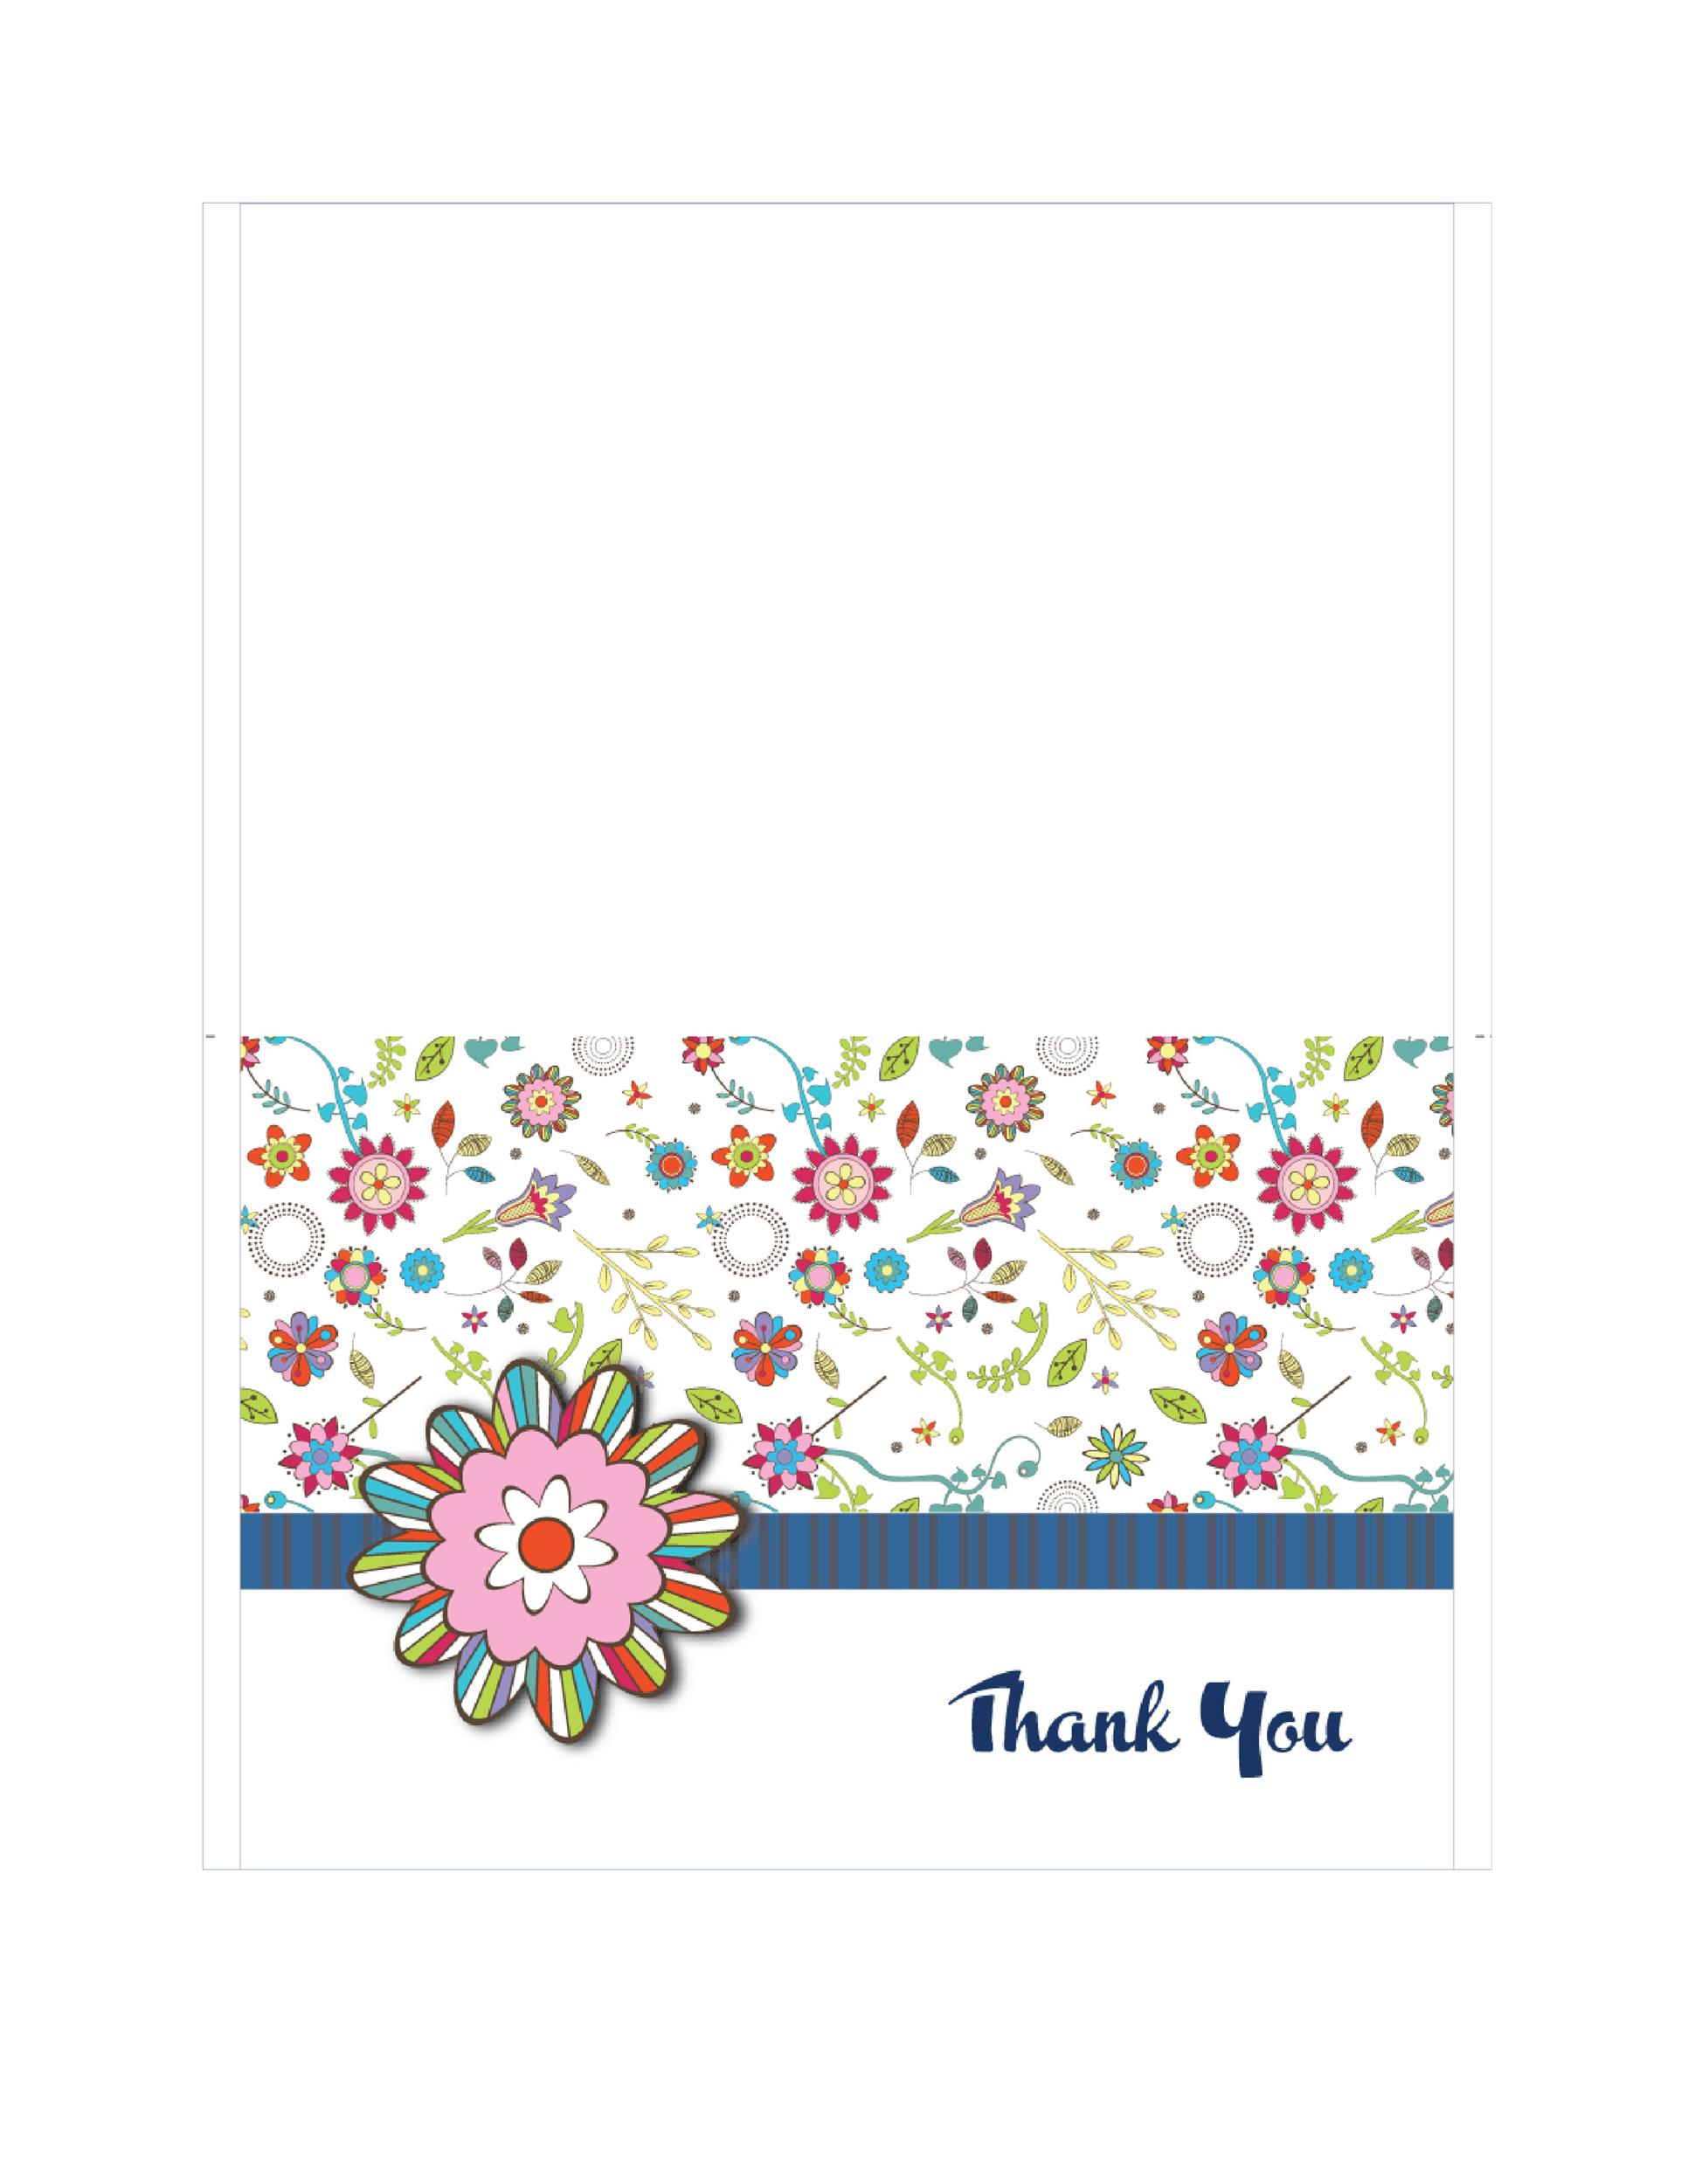 Exhilarating image intended for printable thank you card